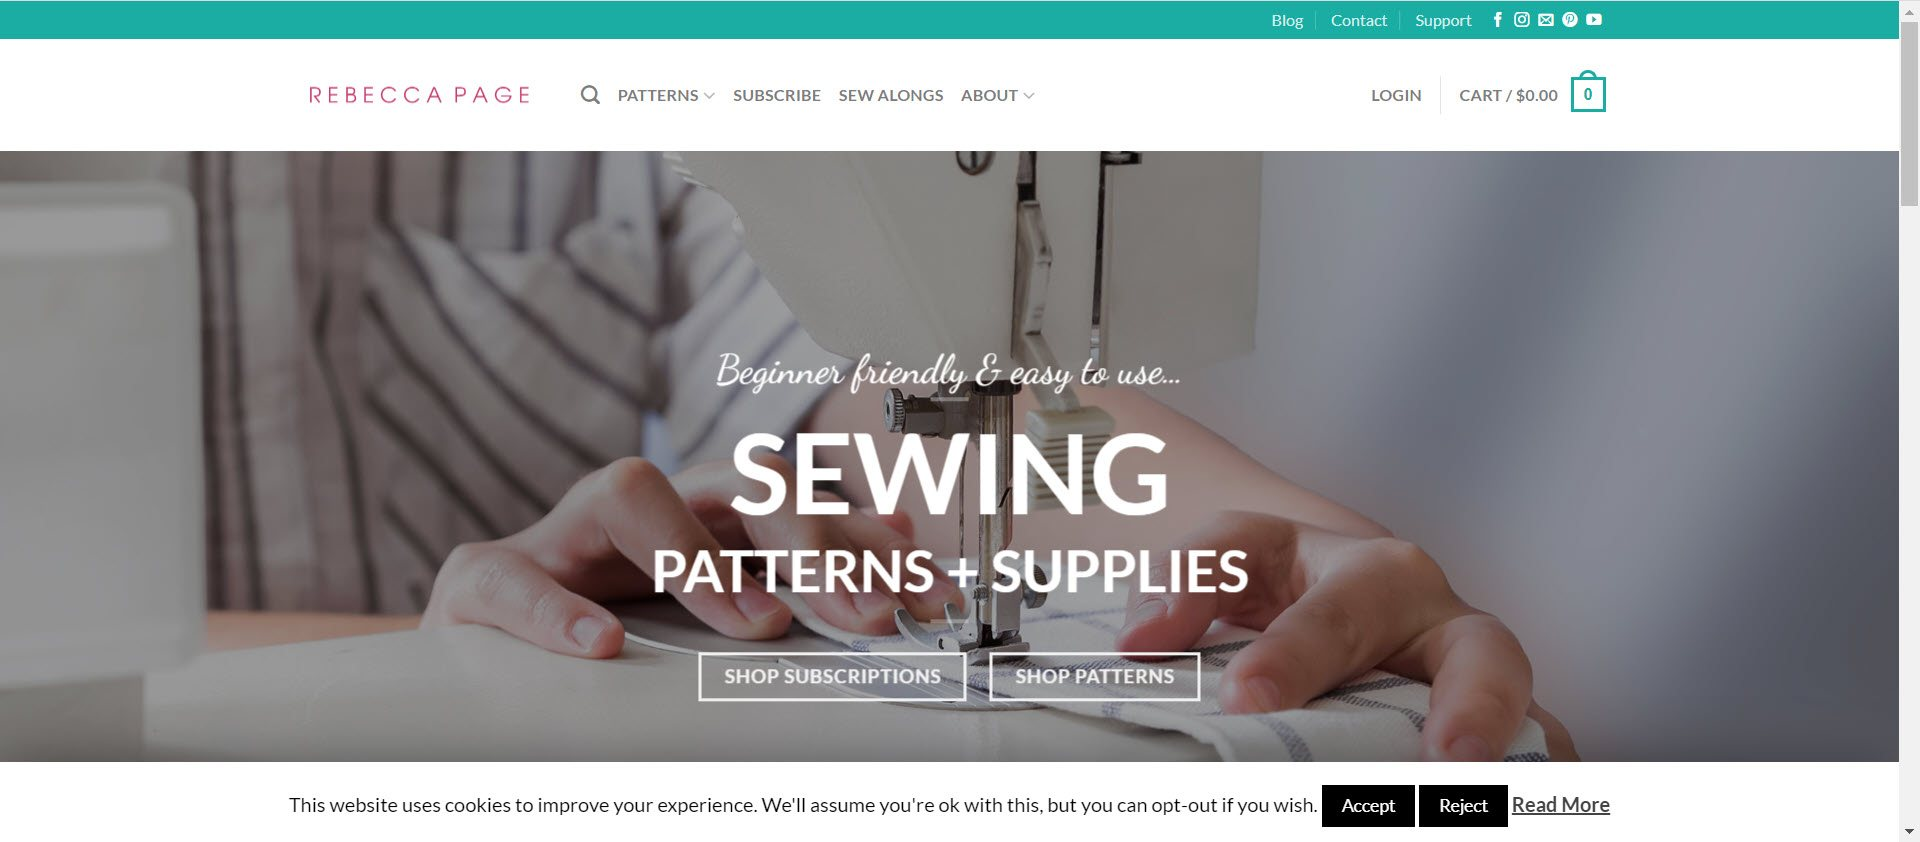 sewing affiliate programs - Rebecca Page